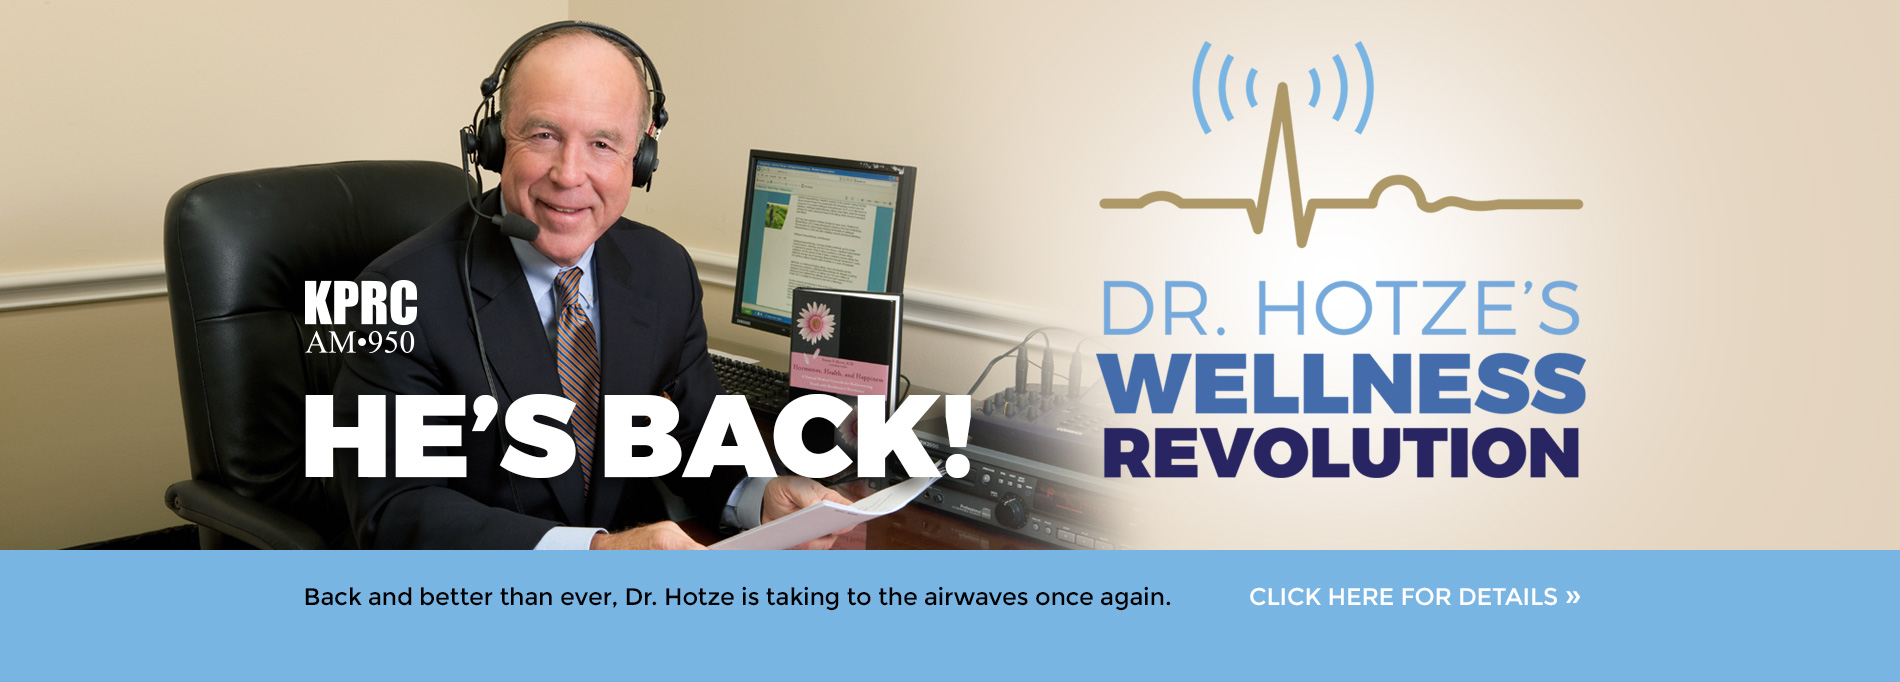 Dr. Hotze's Wellness Revolution Radio Show